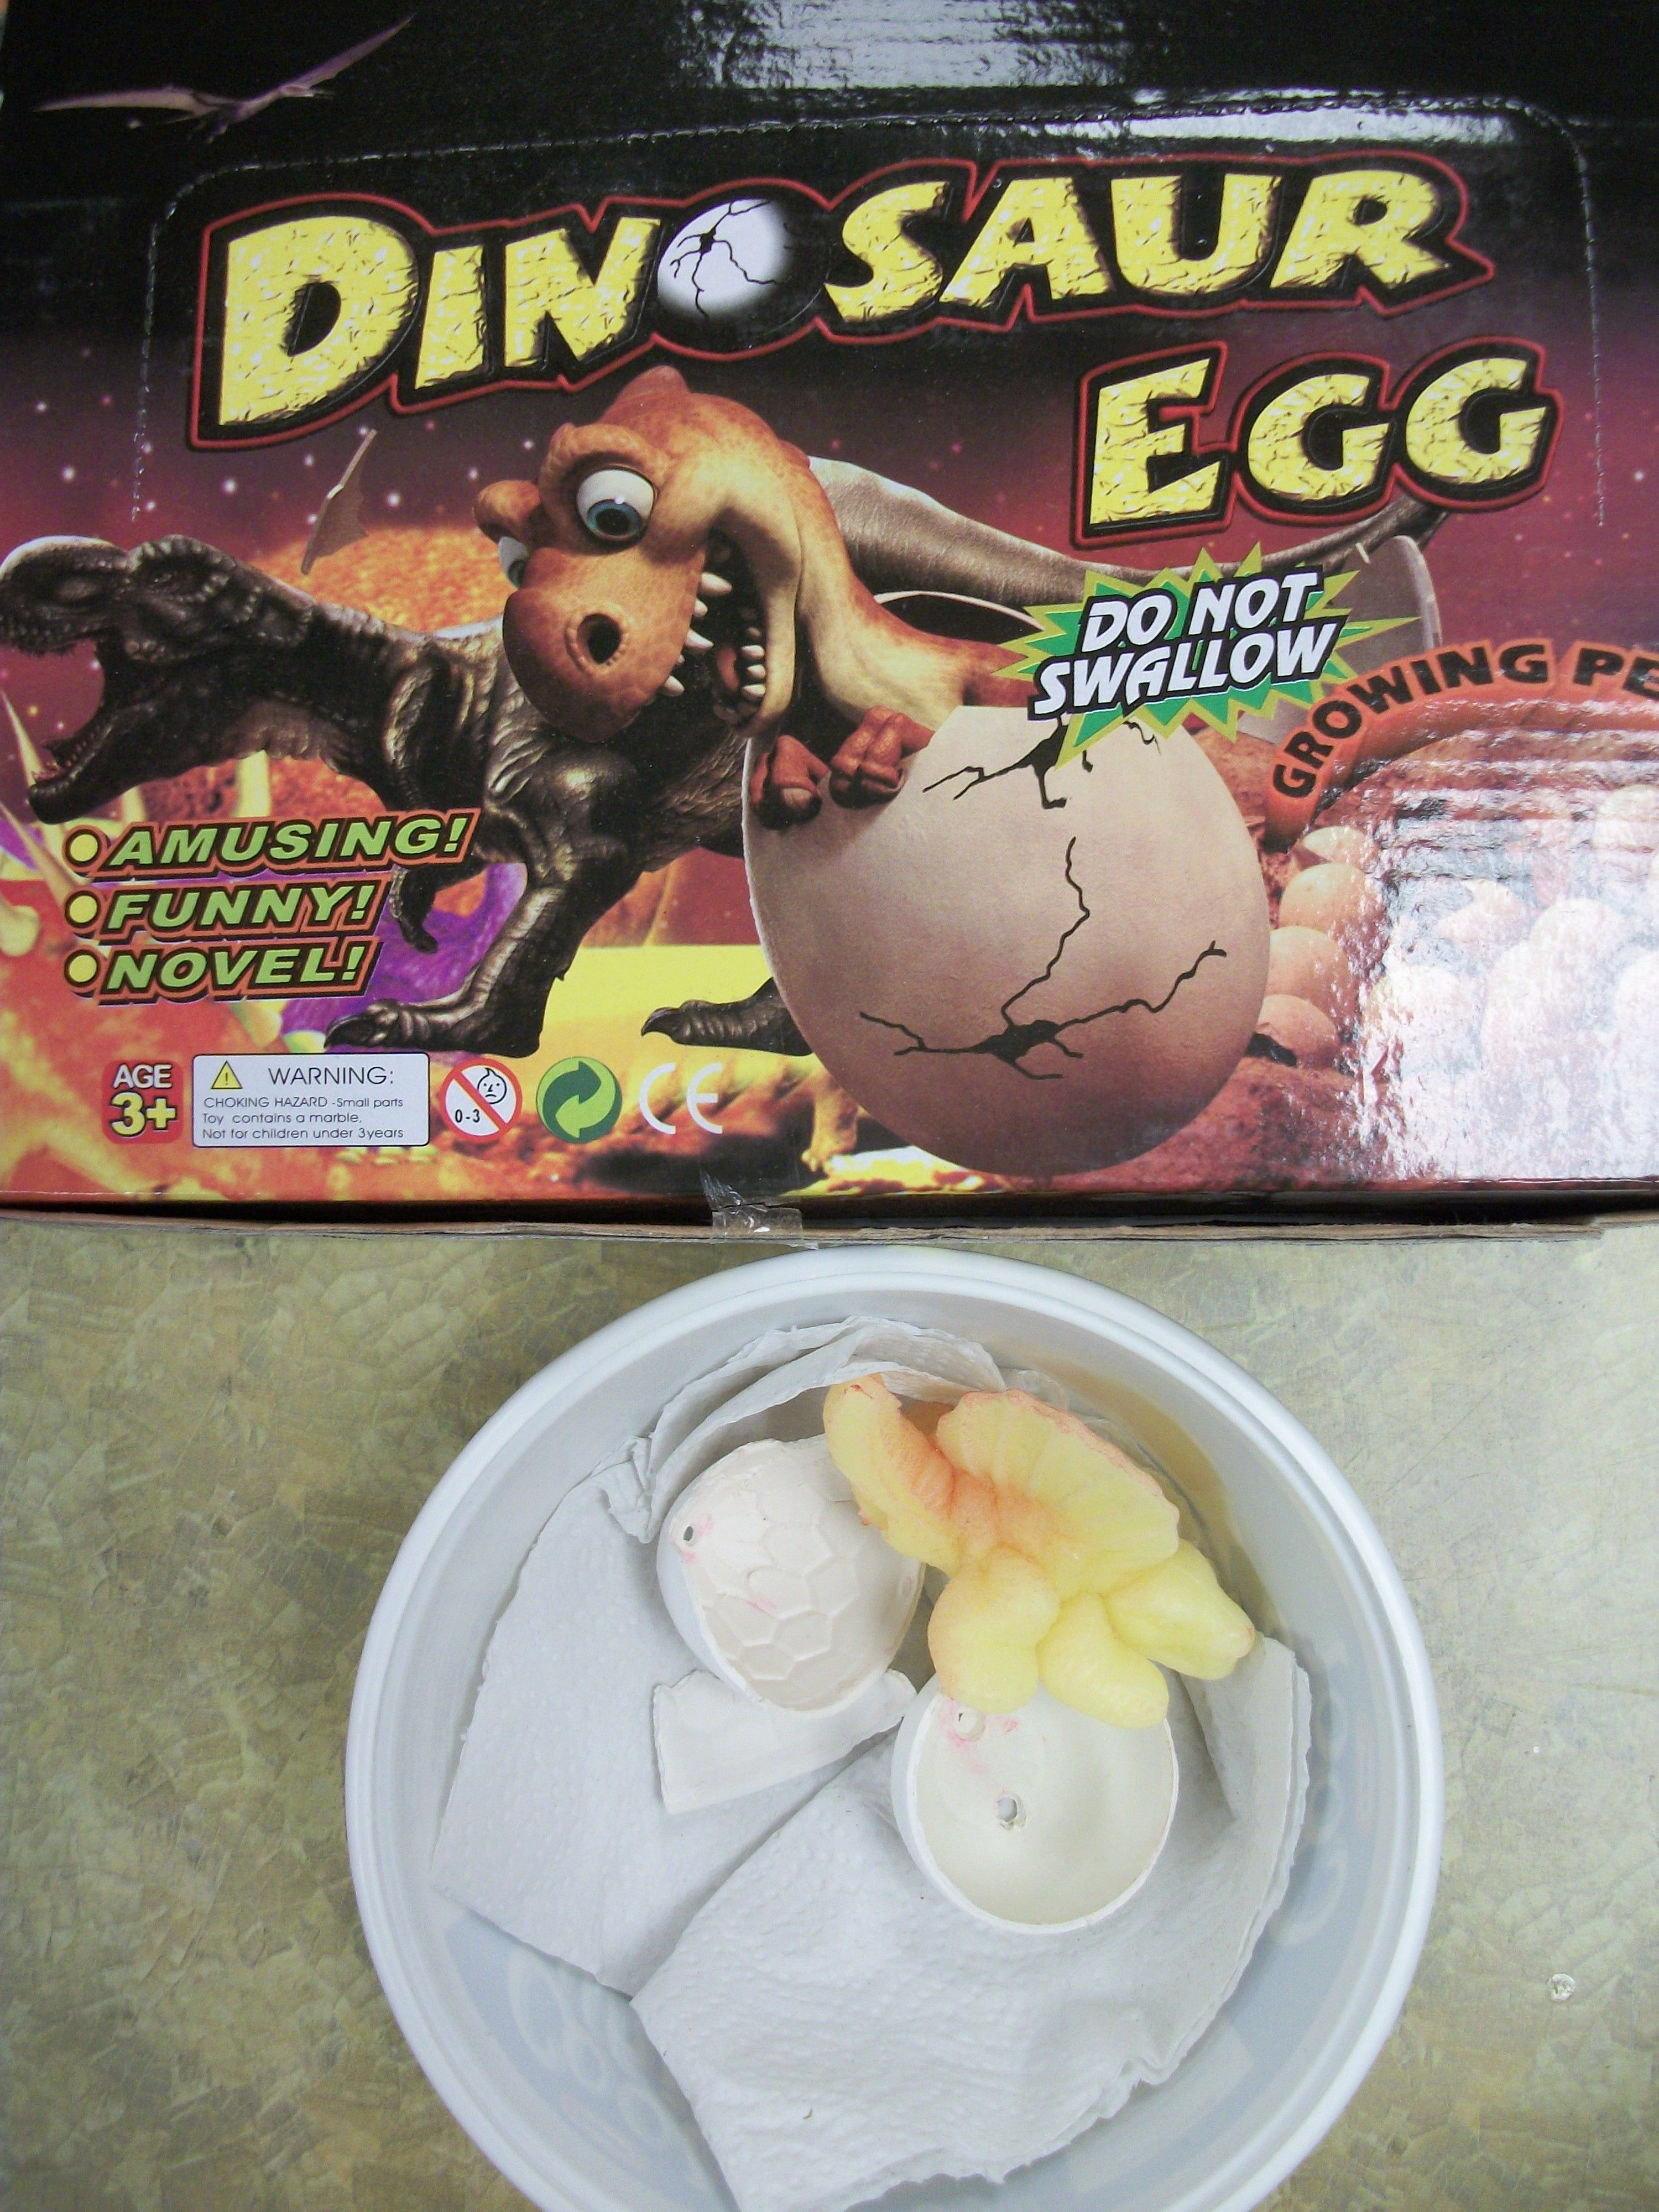 Dig Into Reading 2013:  Hatch a dinosaur egg and watch your pet dino grow!